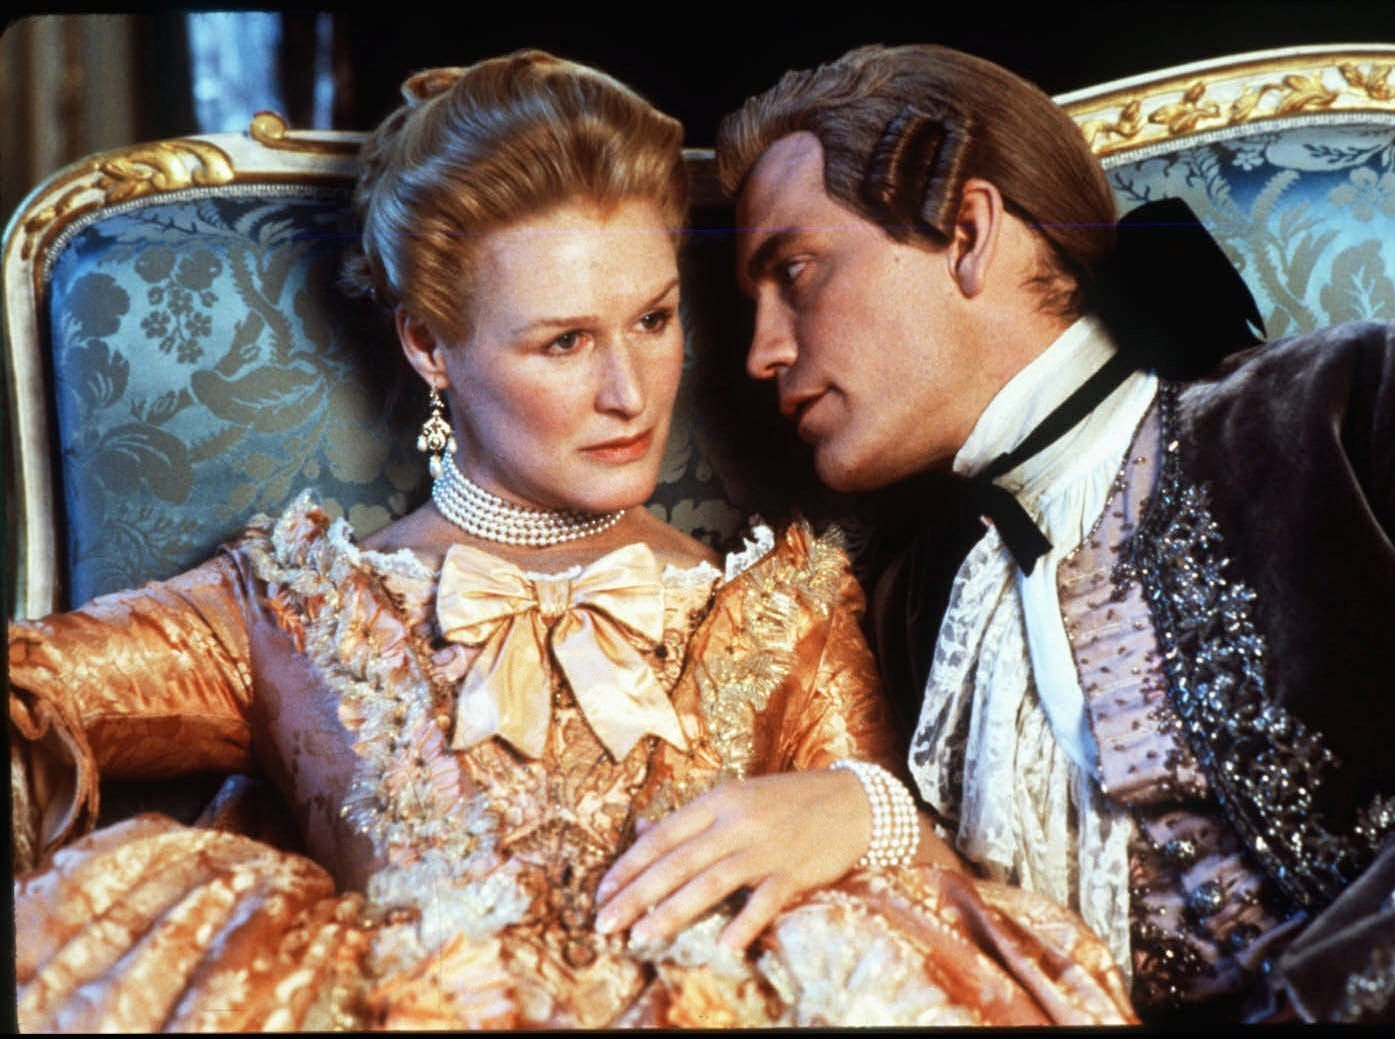 'Dangerous Liaisons': An exploration of seduction, class and manipulation in 18th century France. Starring Glenn Close, John Malkovich and Michelle Pfieffer, the movie was a hit, winning Oscars for best costume design, art direction and screenplay.